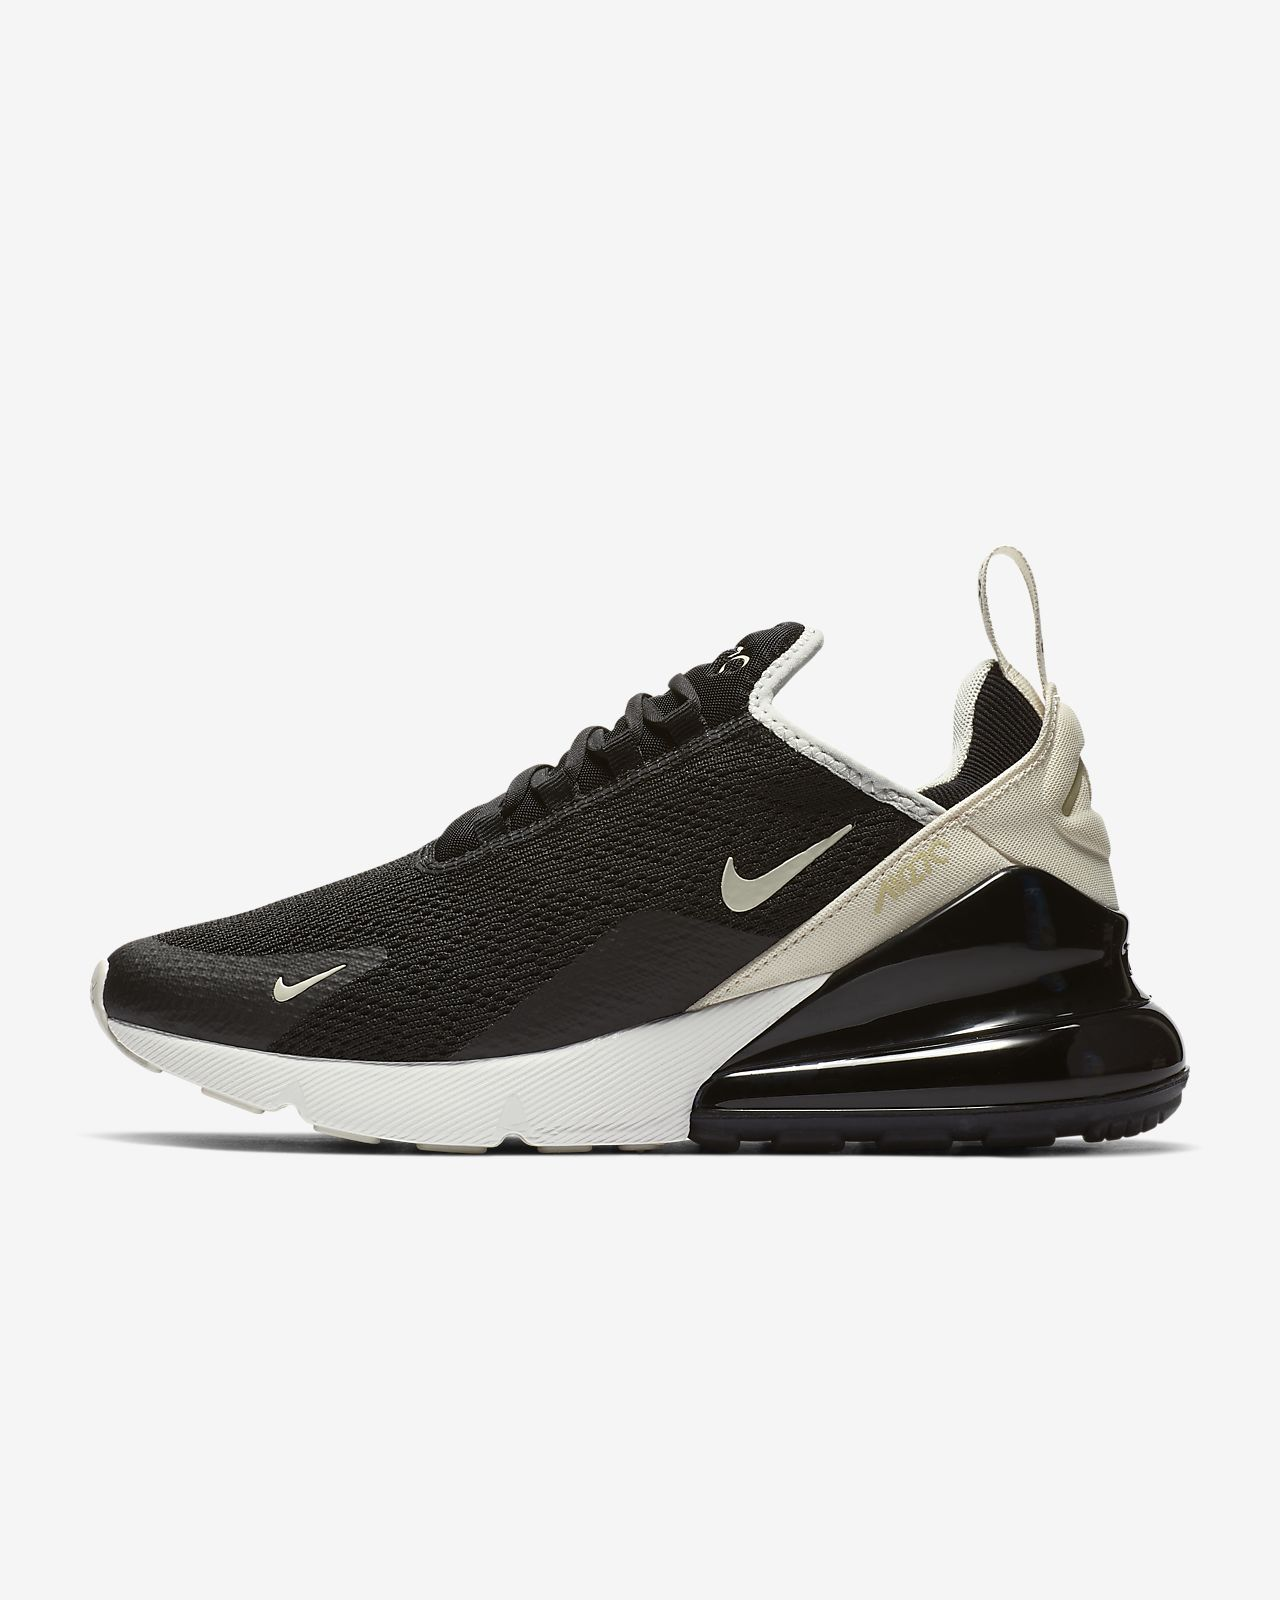 60e446fd45 Nike Air Max 270 Women's Shoe. Nike.com AU